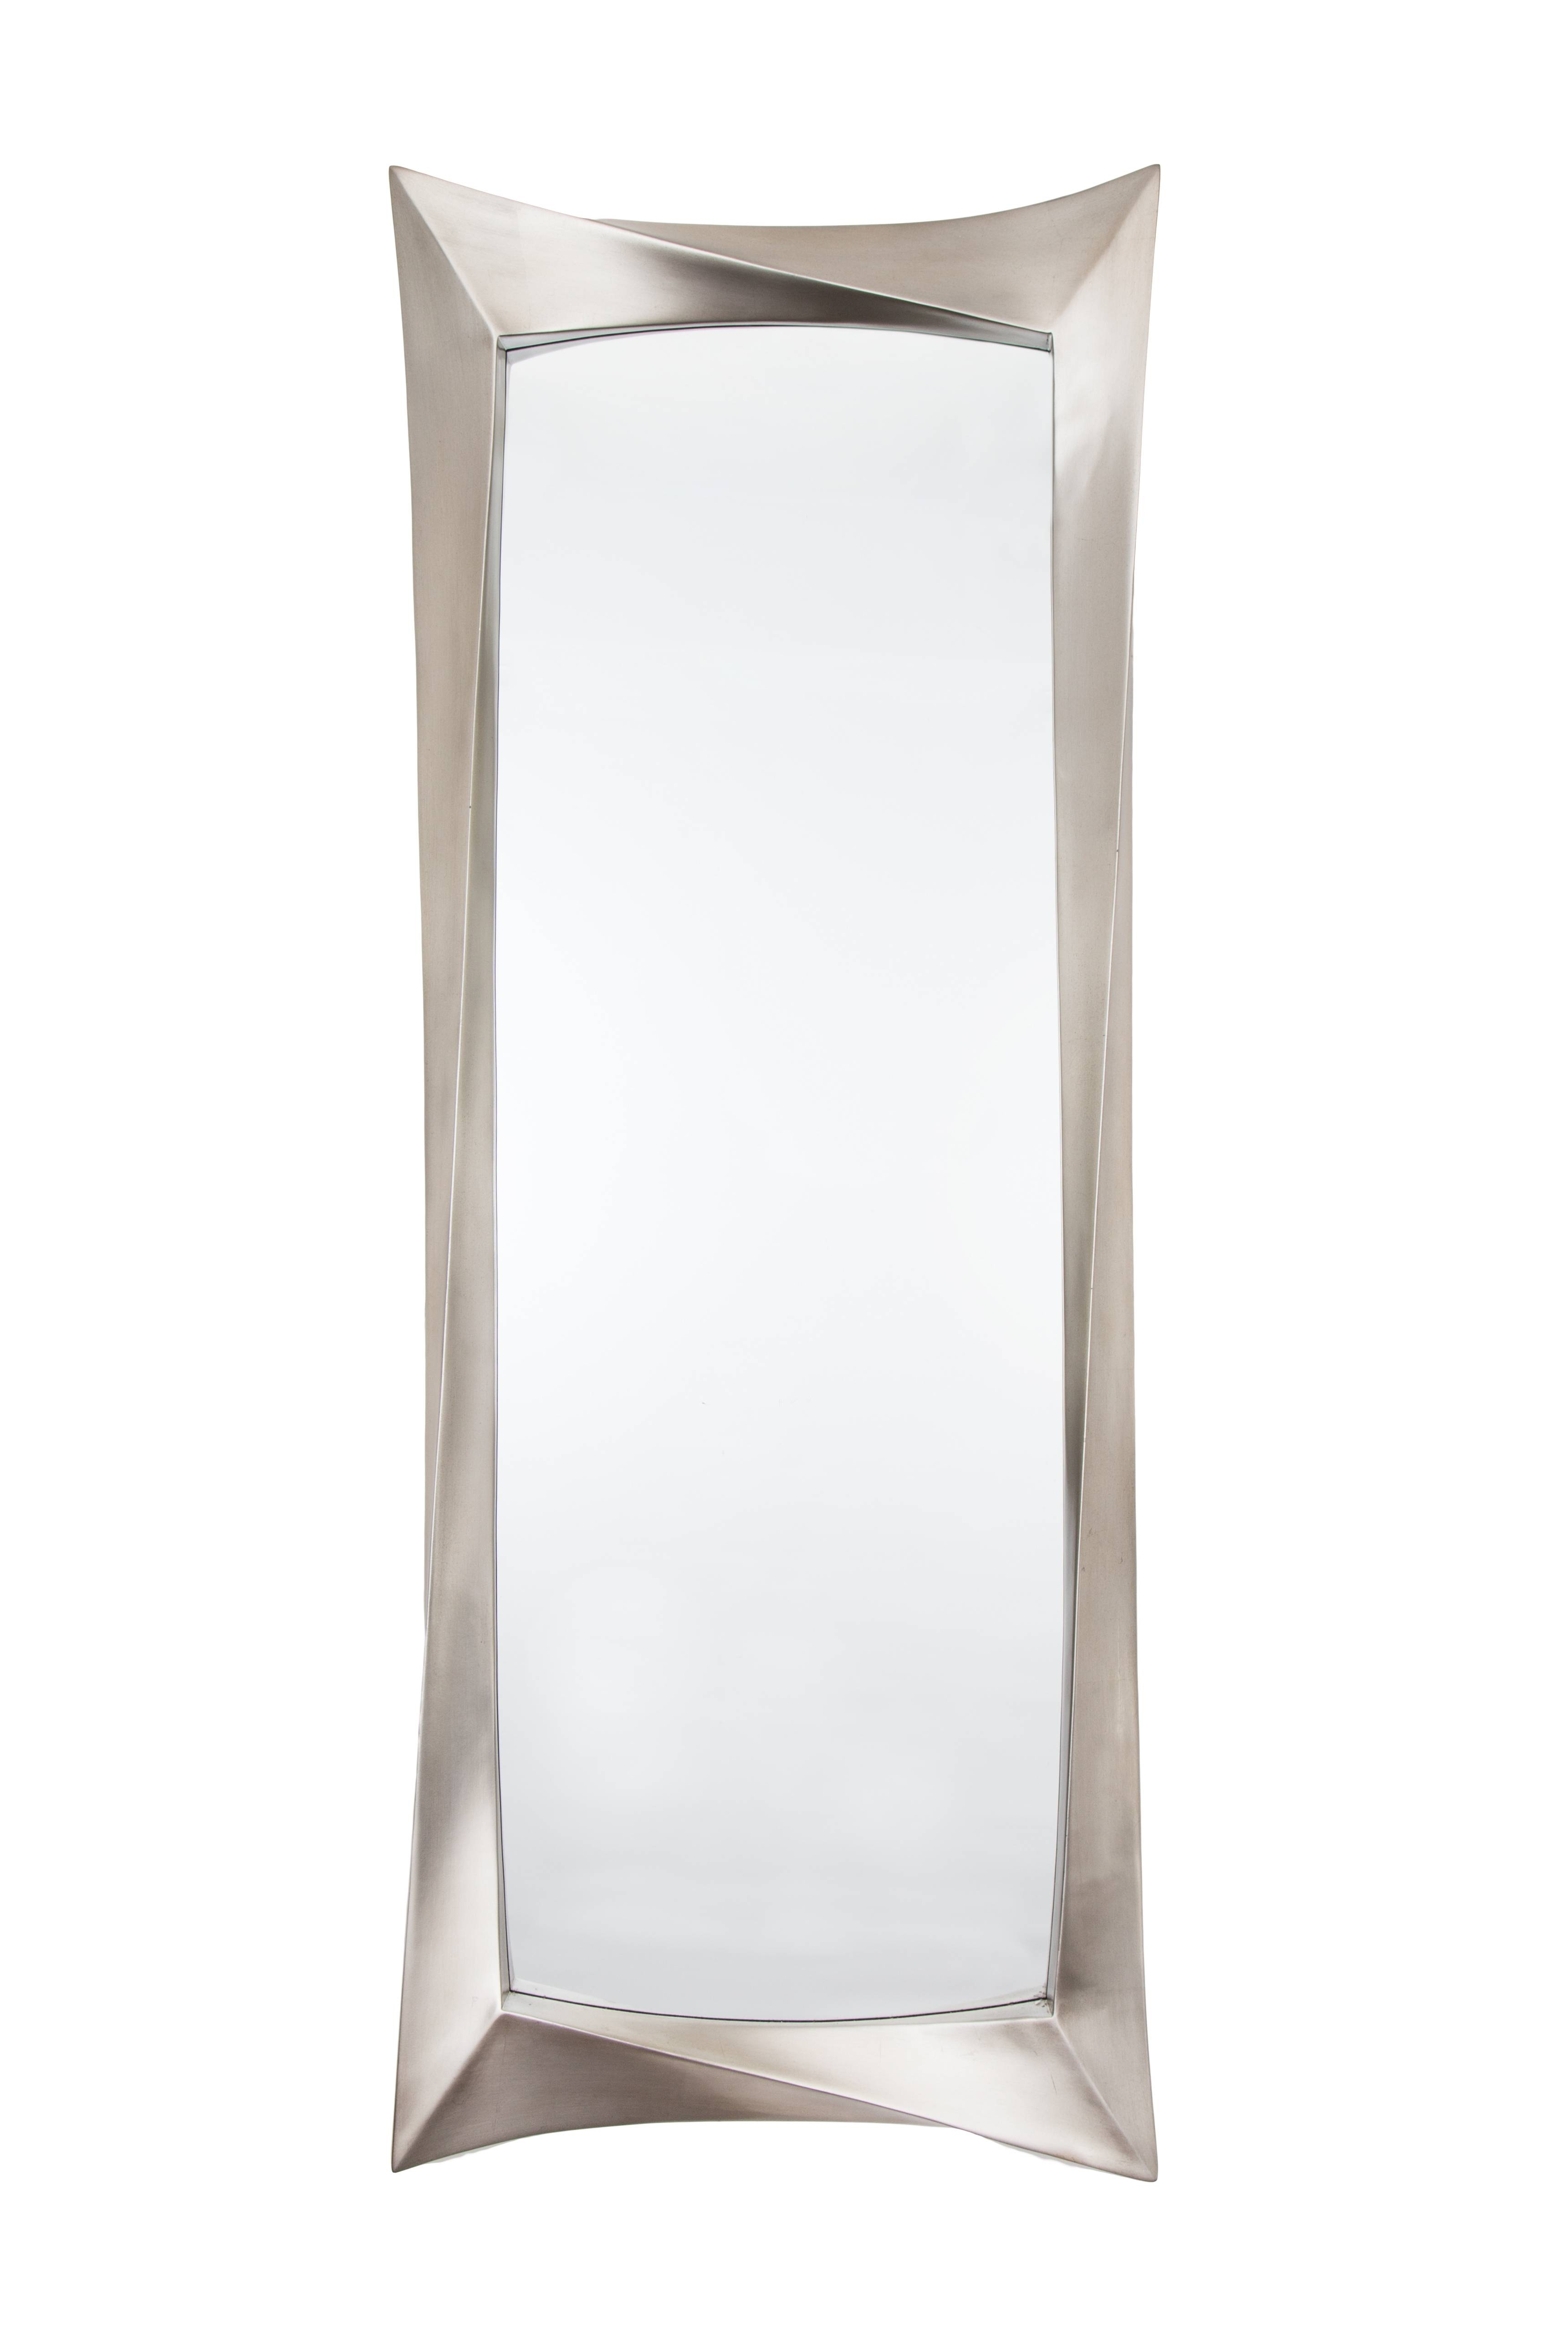 Silver Long Wall Mirror intended for Silver Long Mirrors (Image 15 of 15)